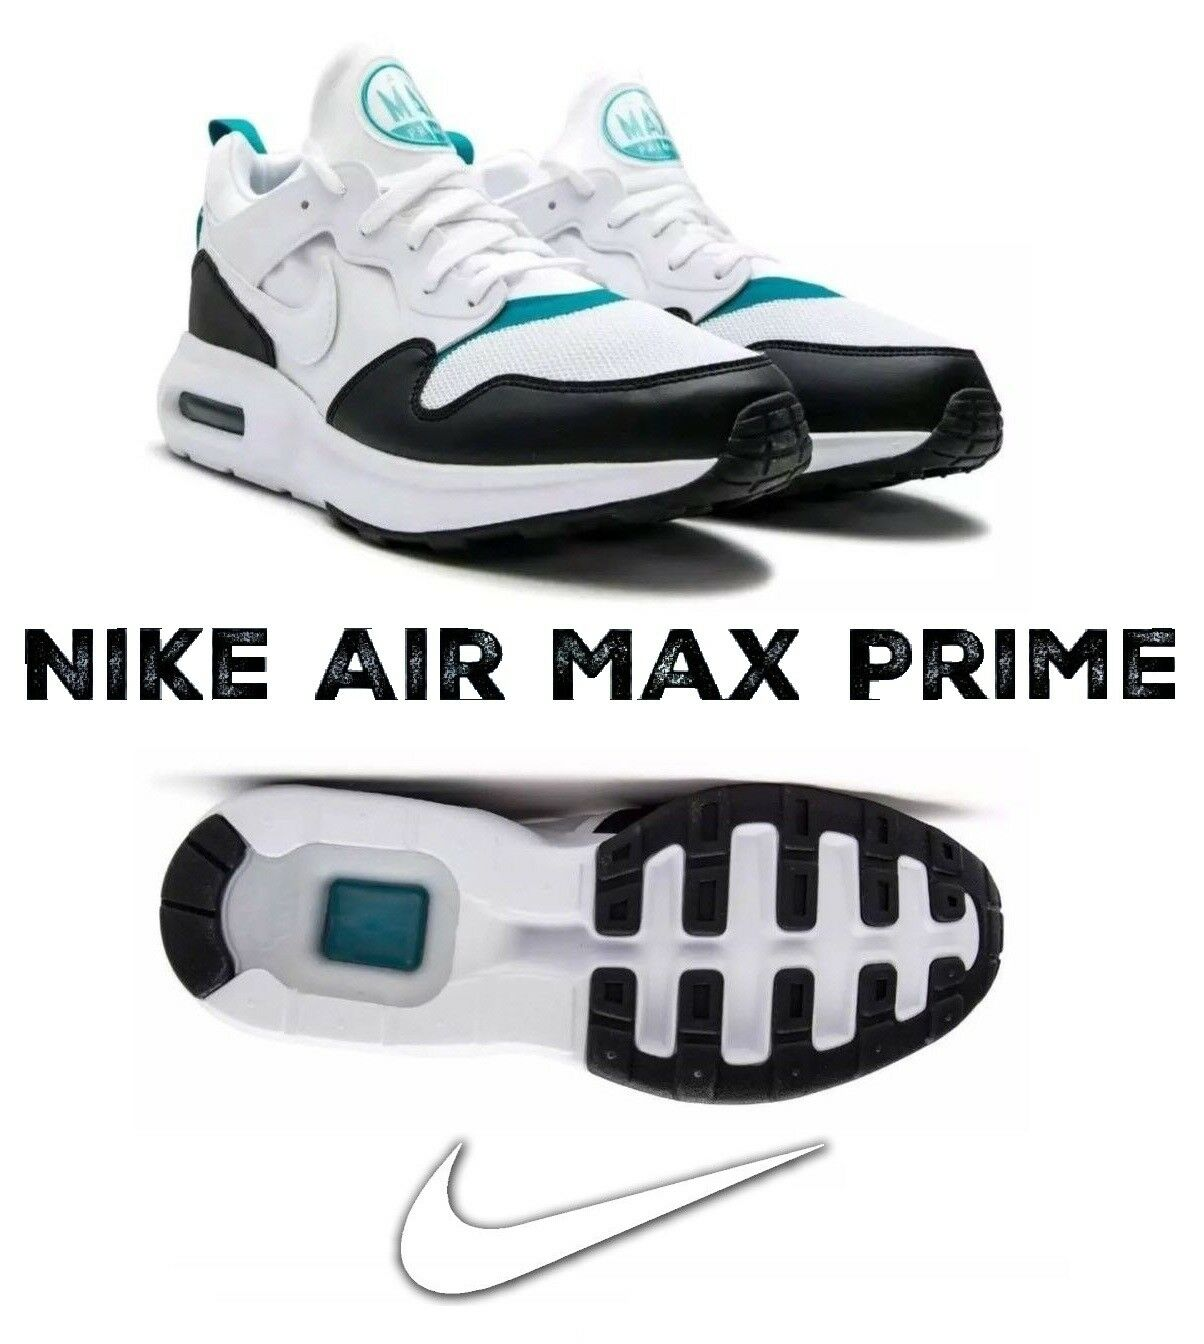 NIKE AIR MAX PRIME WHITE TURBO GREEN-PERFORMANCE SHOES SNEAKERS MEN's 9 -NEW+BOX